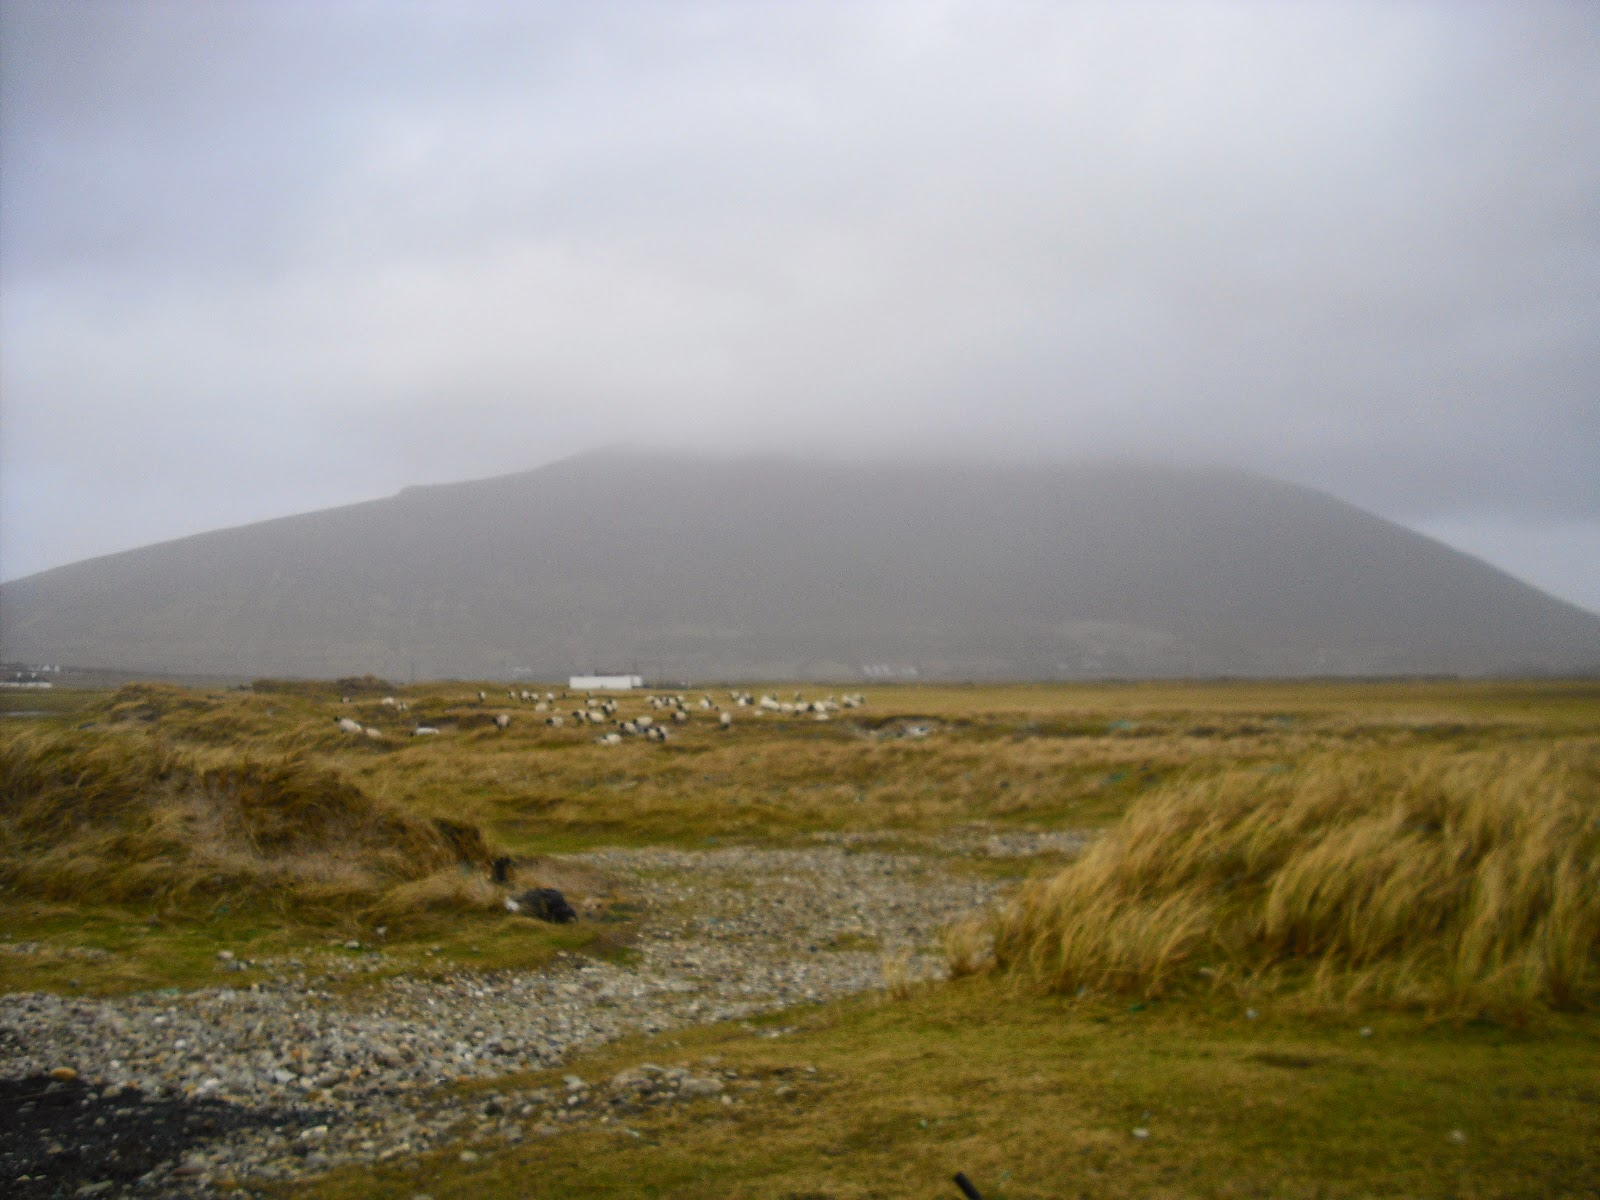 A view inland from Keel Strand, Achill Island, Co Mayo, Ireland.